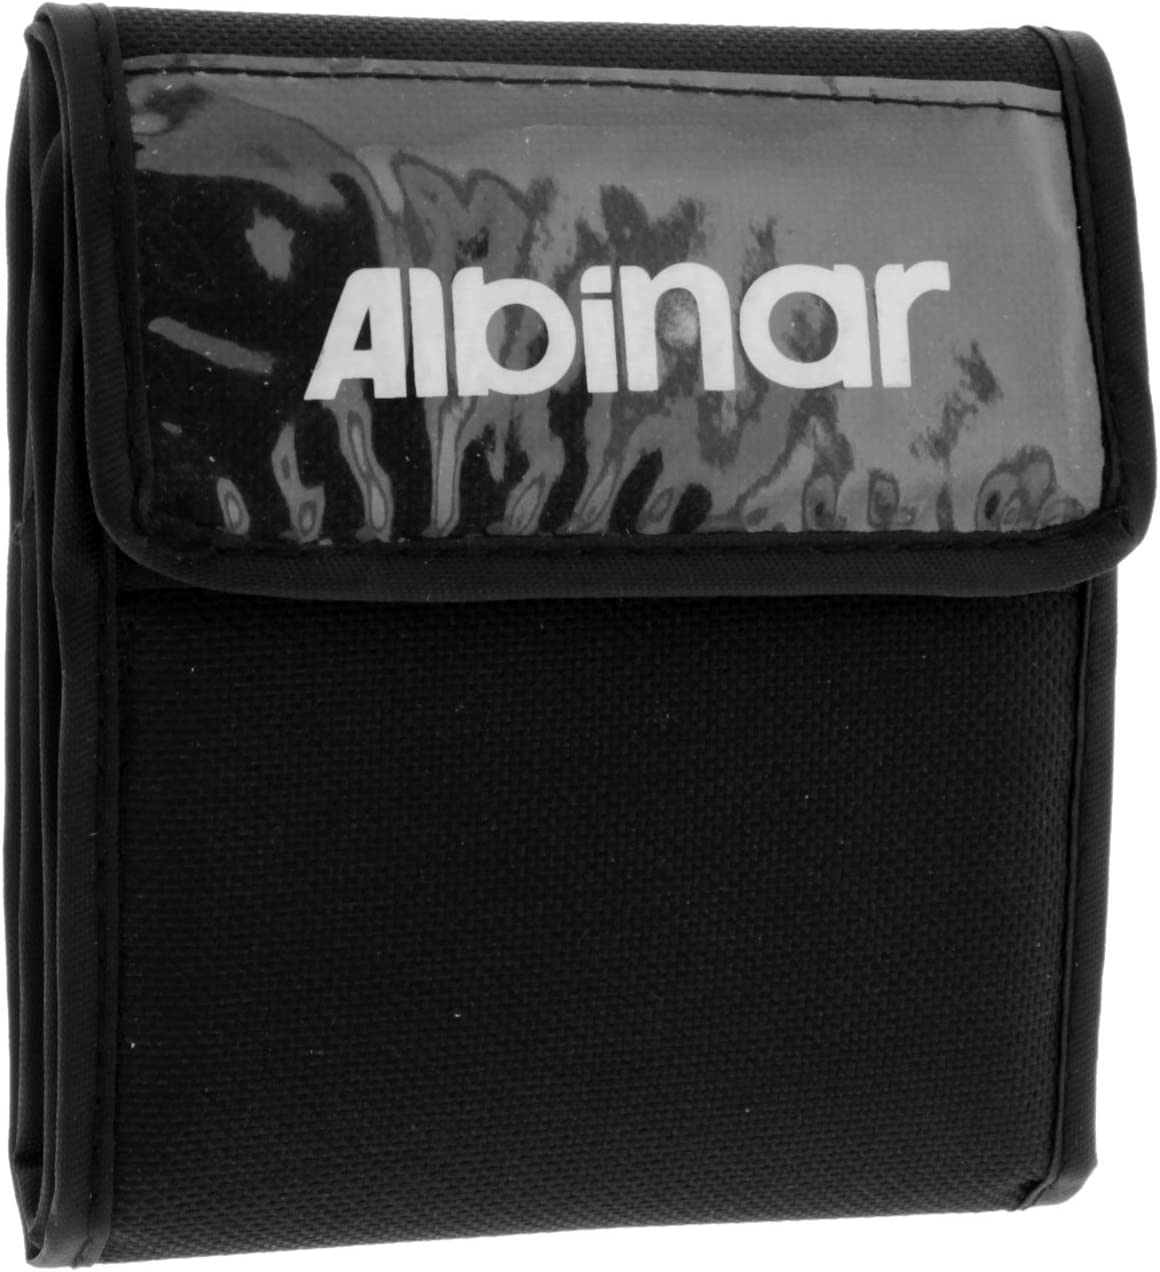 Albinar Folding Filter Pouch for 4 Filters up to 82mm, Large